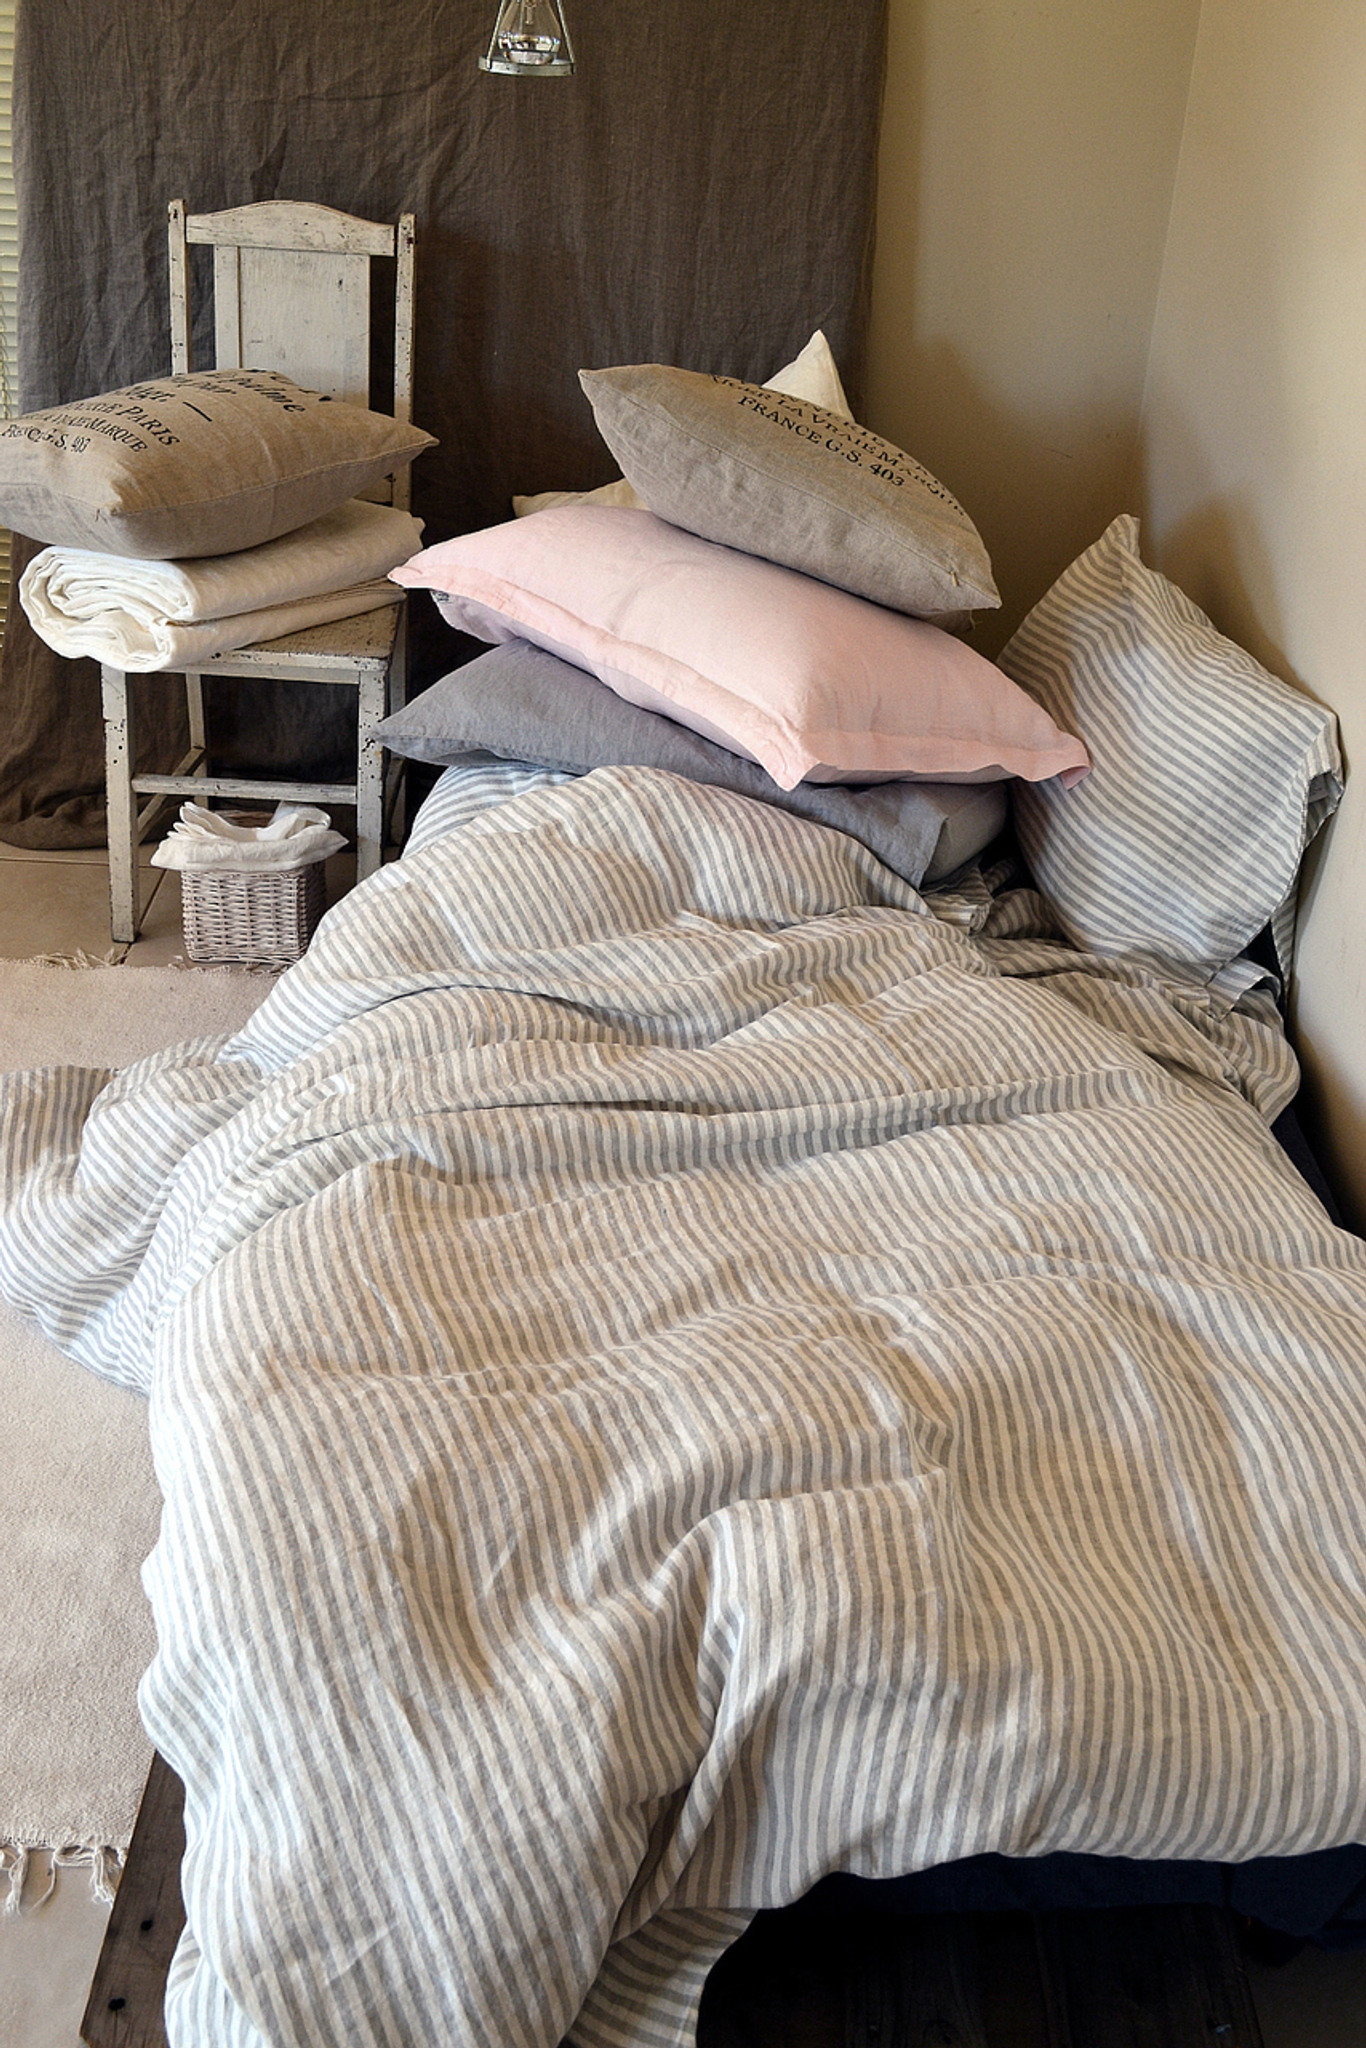 Stonewashed Natural Linen Bedspread Provincial Style Striped  Bed Cover Light Weight Blanket Throw  LifeInLinenStudio Stonewashed Linen OOAK